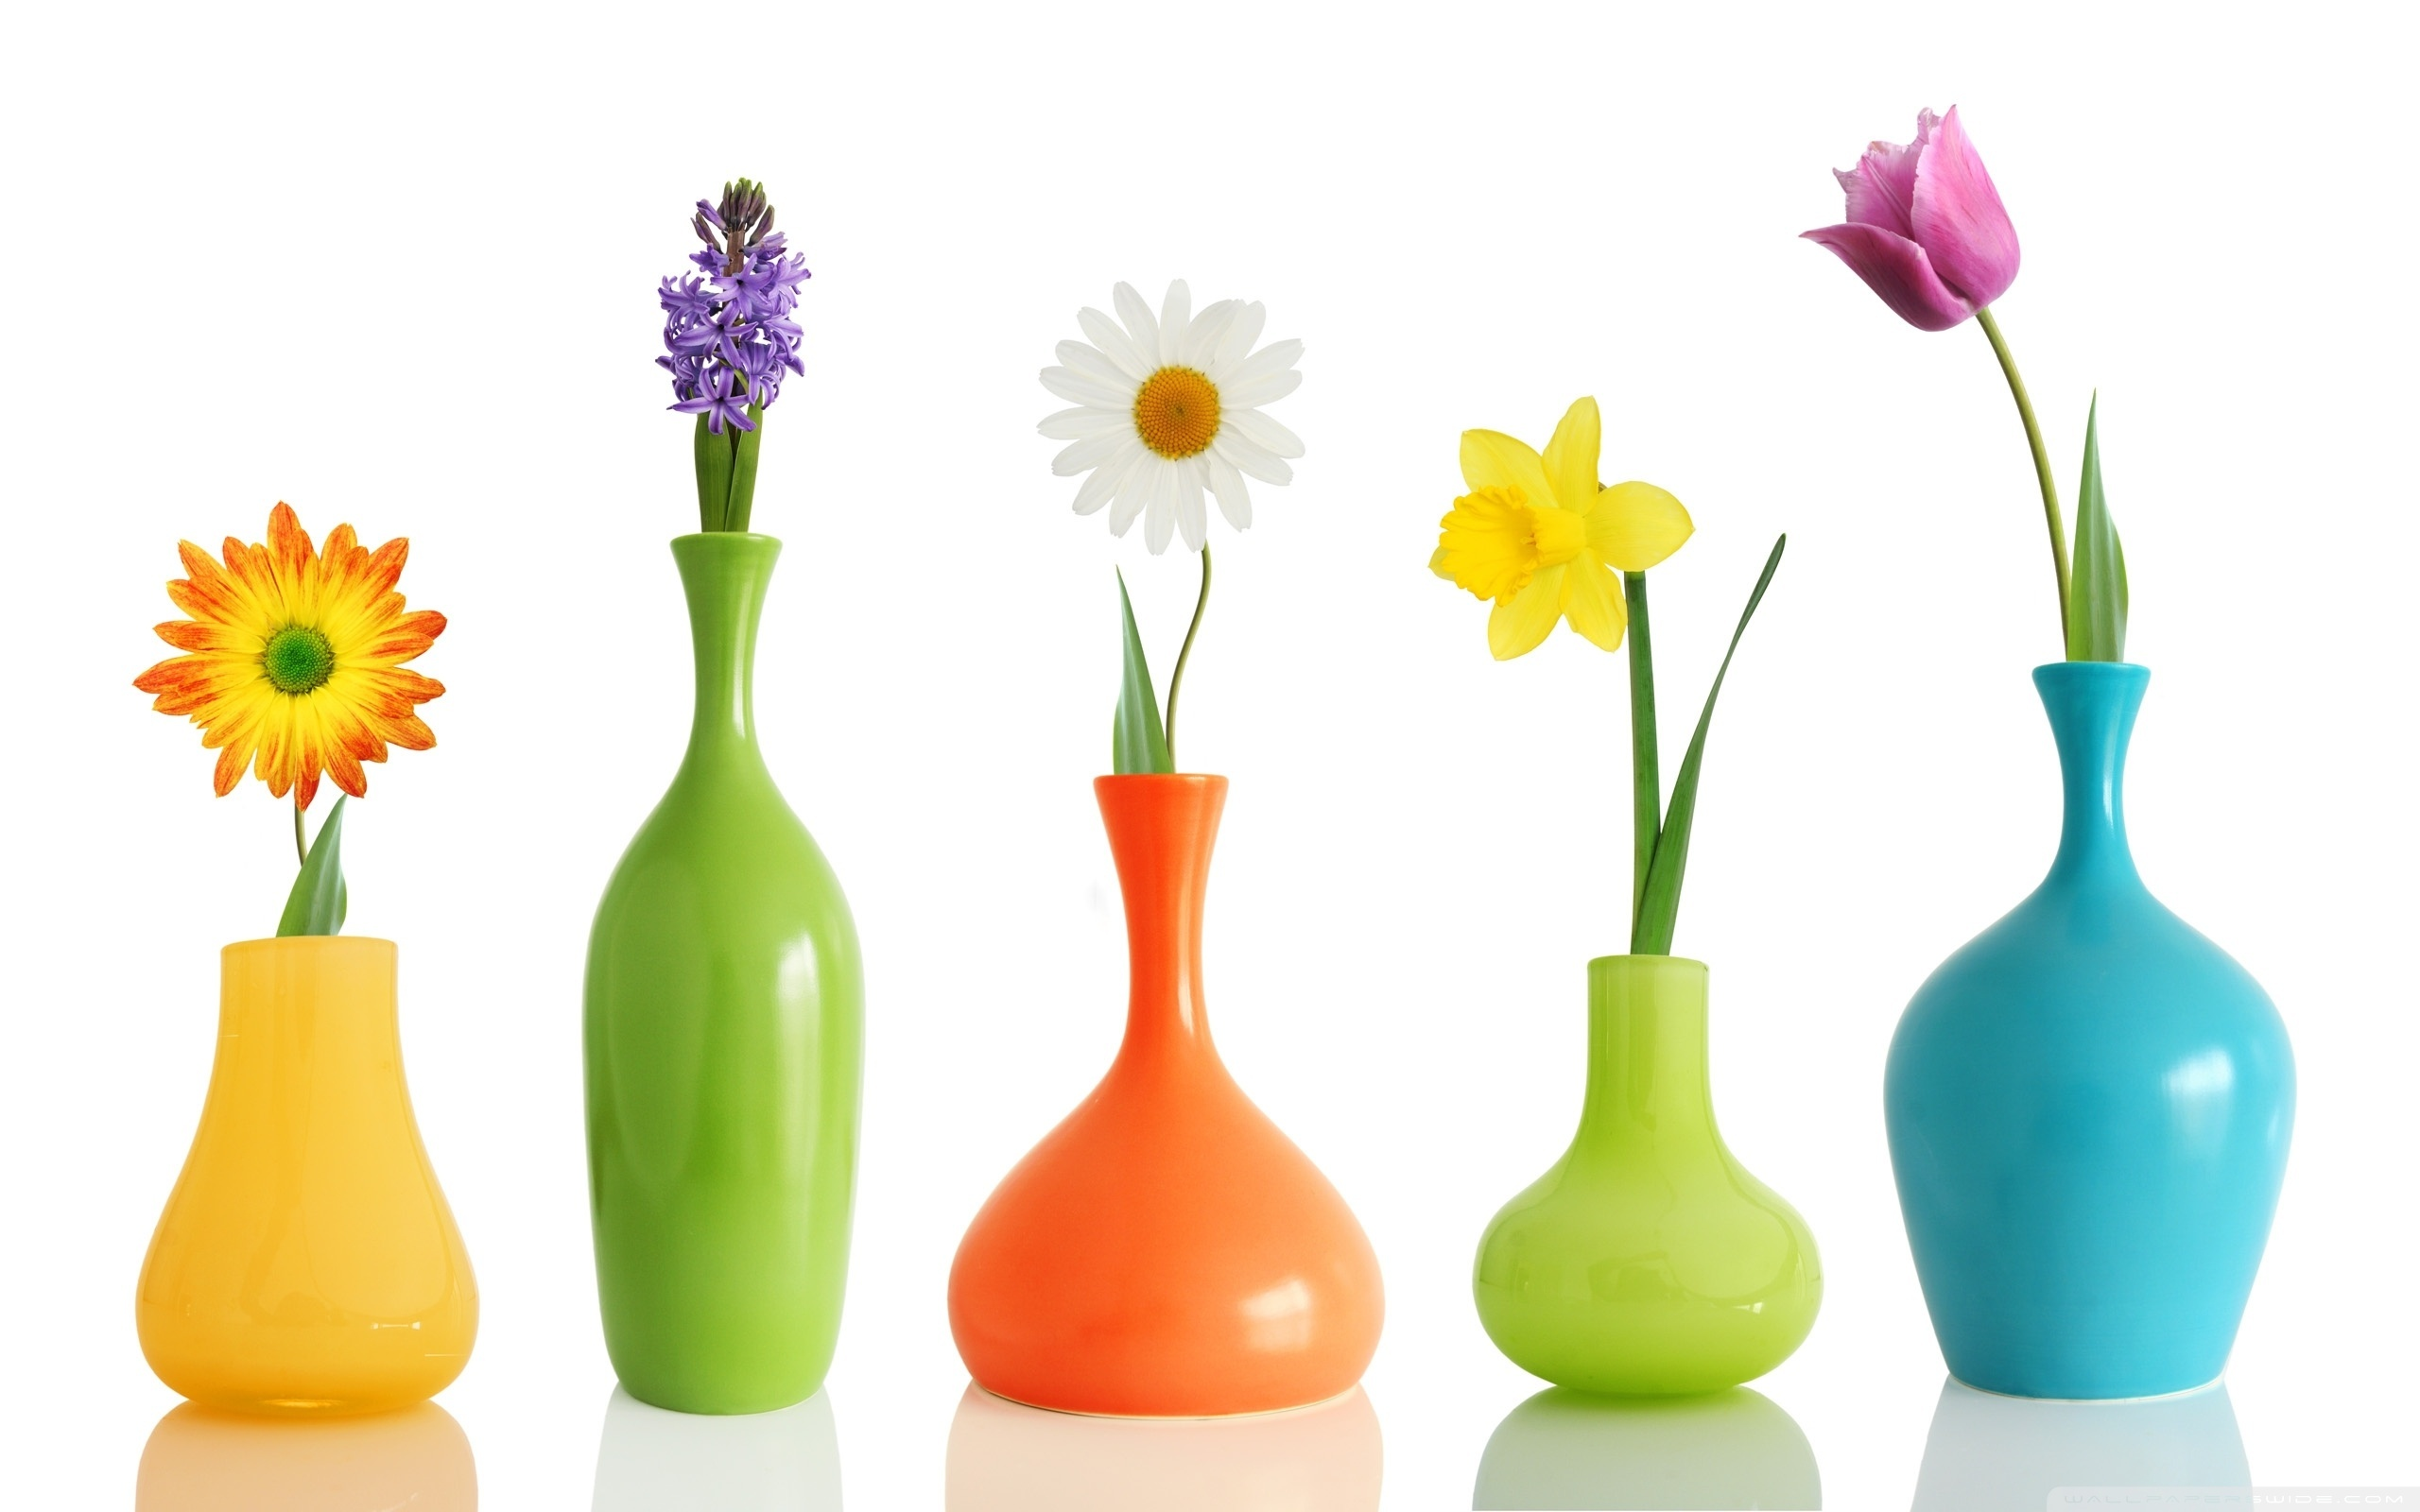 There are generally four types of vases. These are traditional ones, cylindrical, flat and bottle pots.